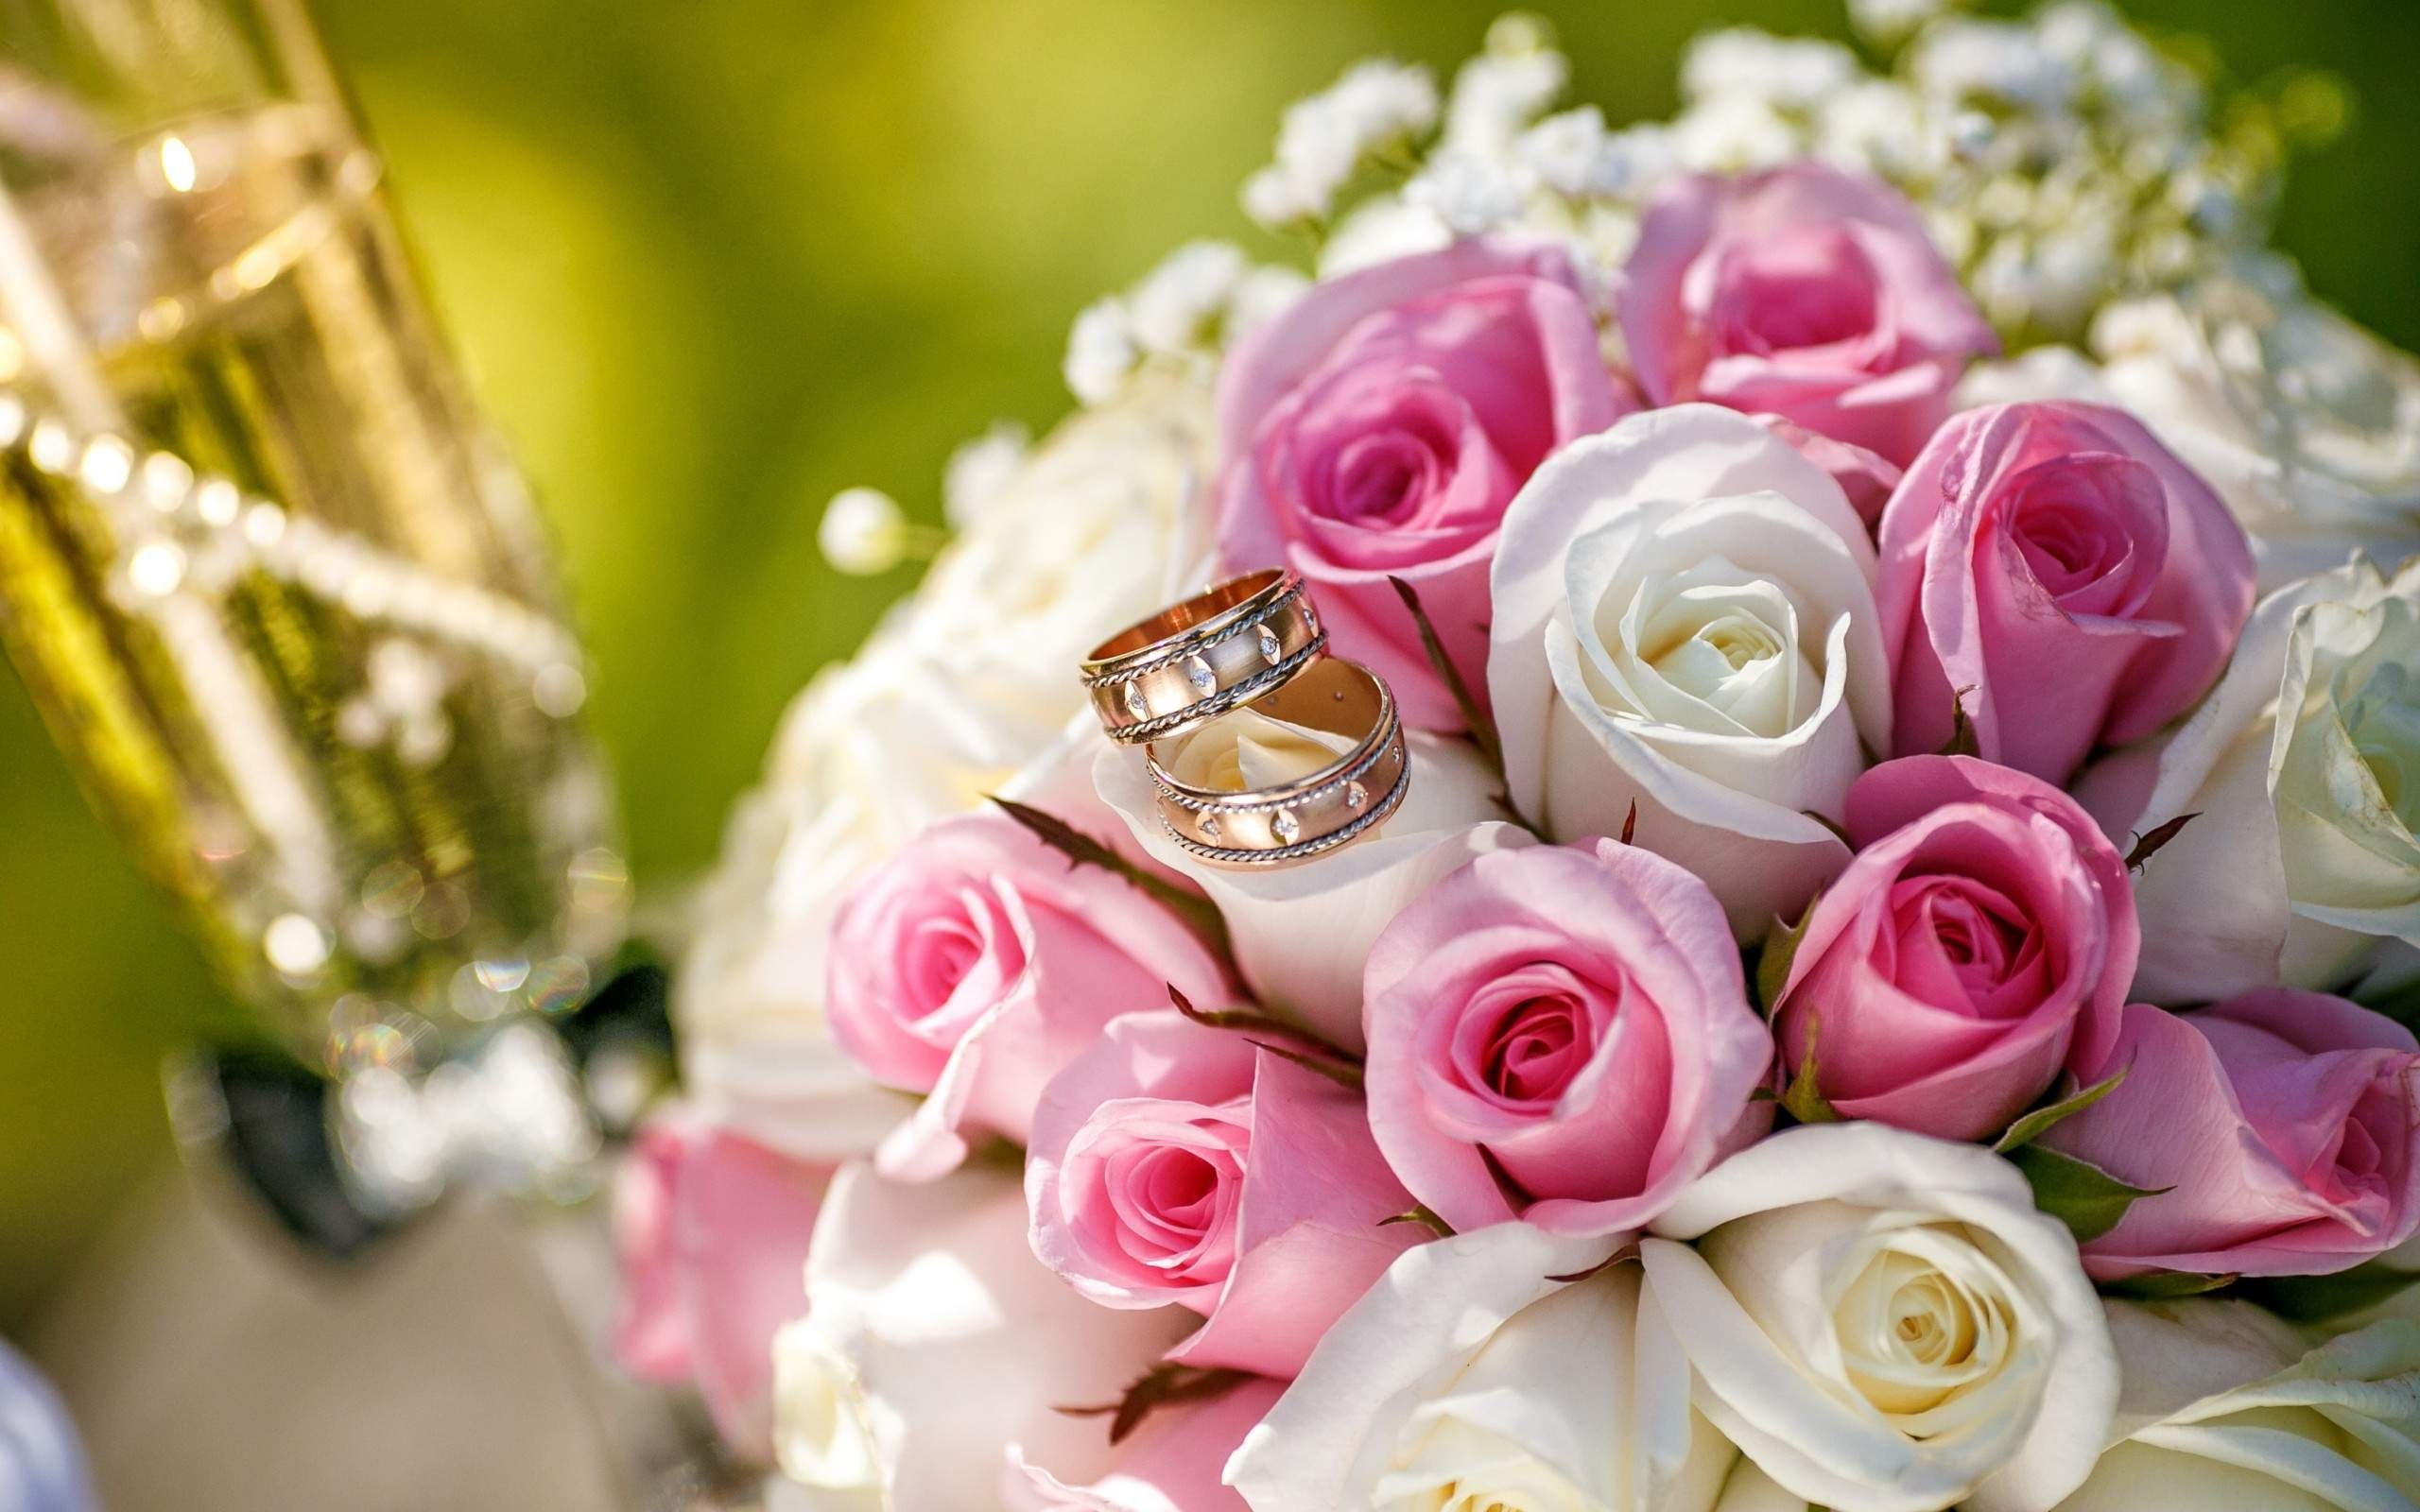 Wedding Flowers Online.How To Select The Right Wedding Flowers Based On Your Traditions